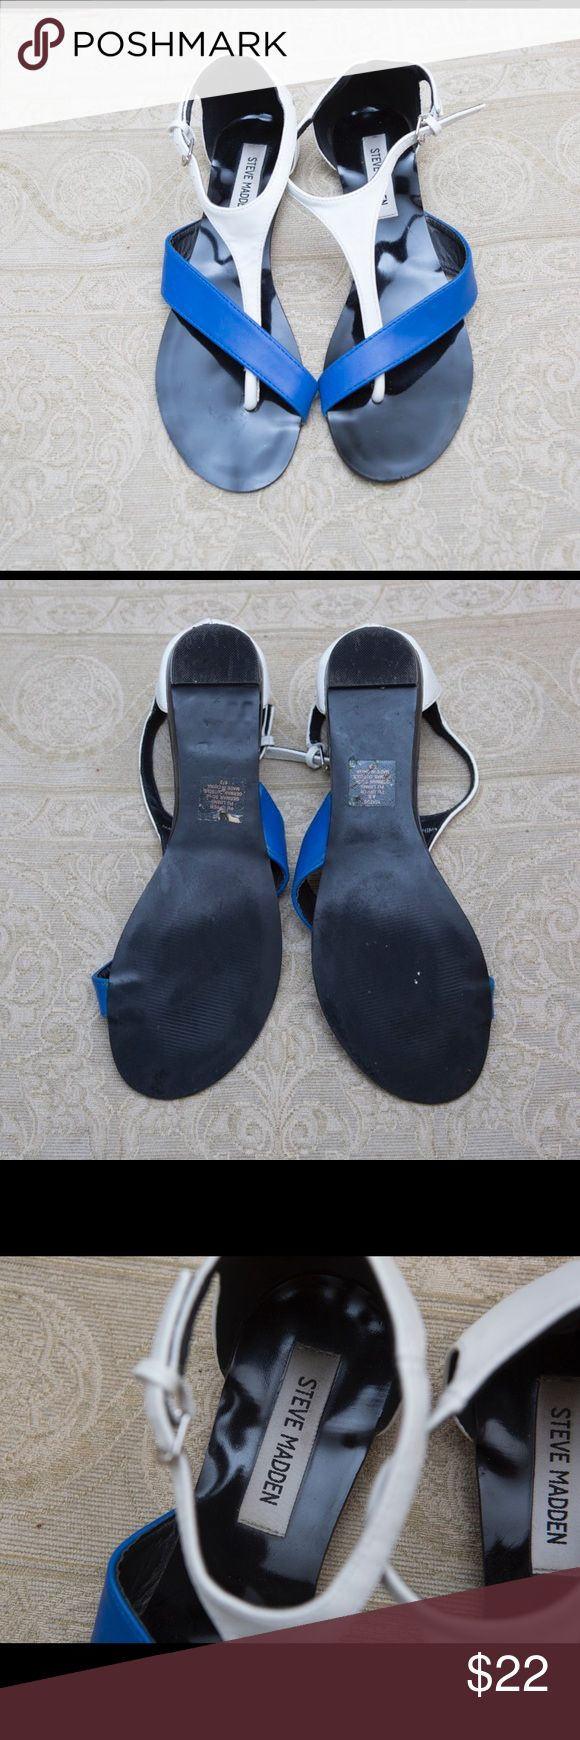 Blue/white Steve Madden flat sandals. Size 8.5 Get ready for Spring with these royal blue and white sandals with a shiny black base/sole. Clean and minimally used. Steve Madden Shoes Sandals